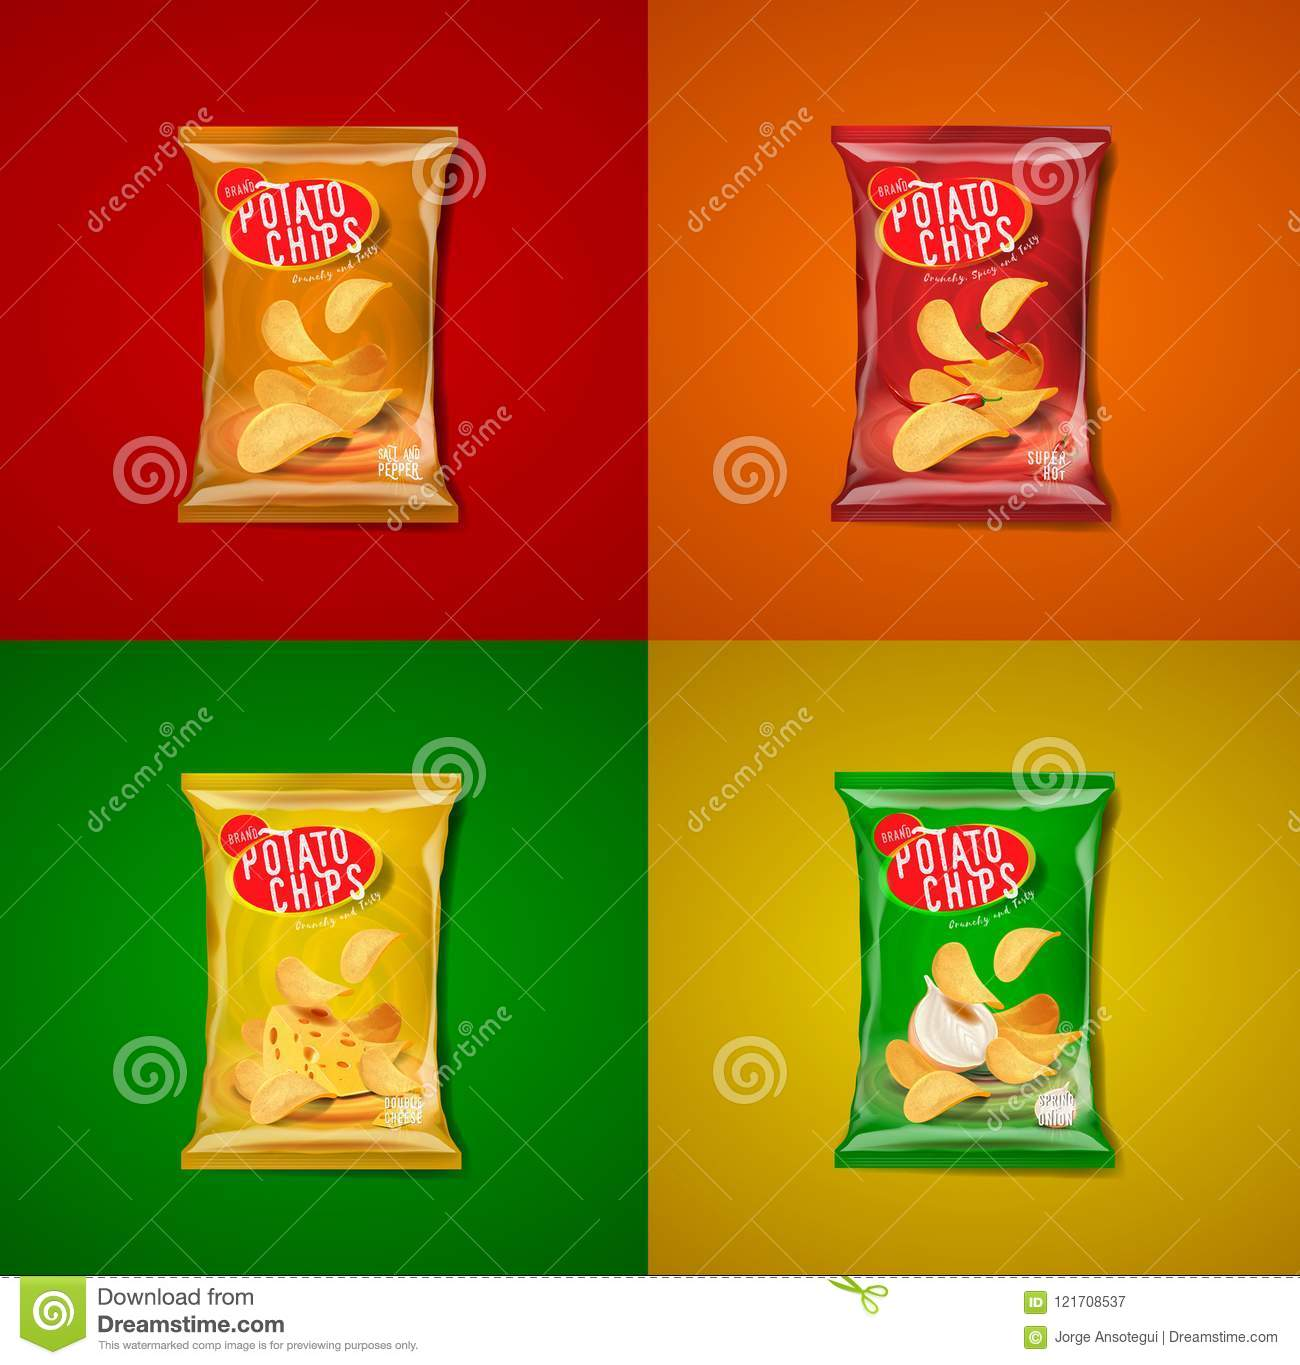 Potato Chips Advertisement Bags Stock Vector - Illustration of logo